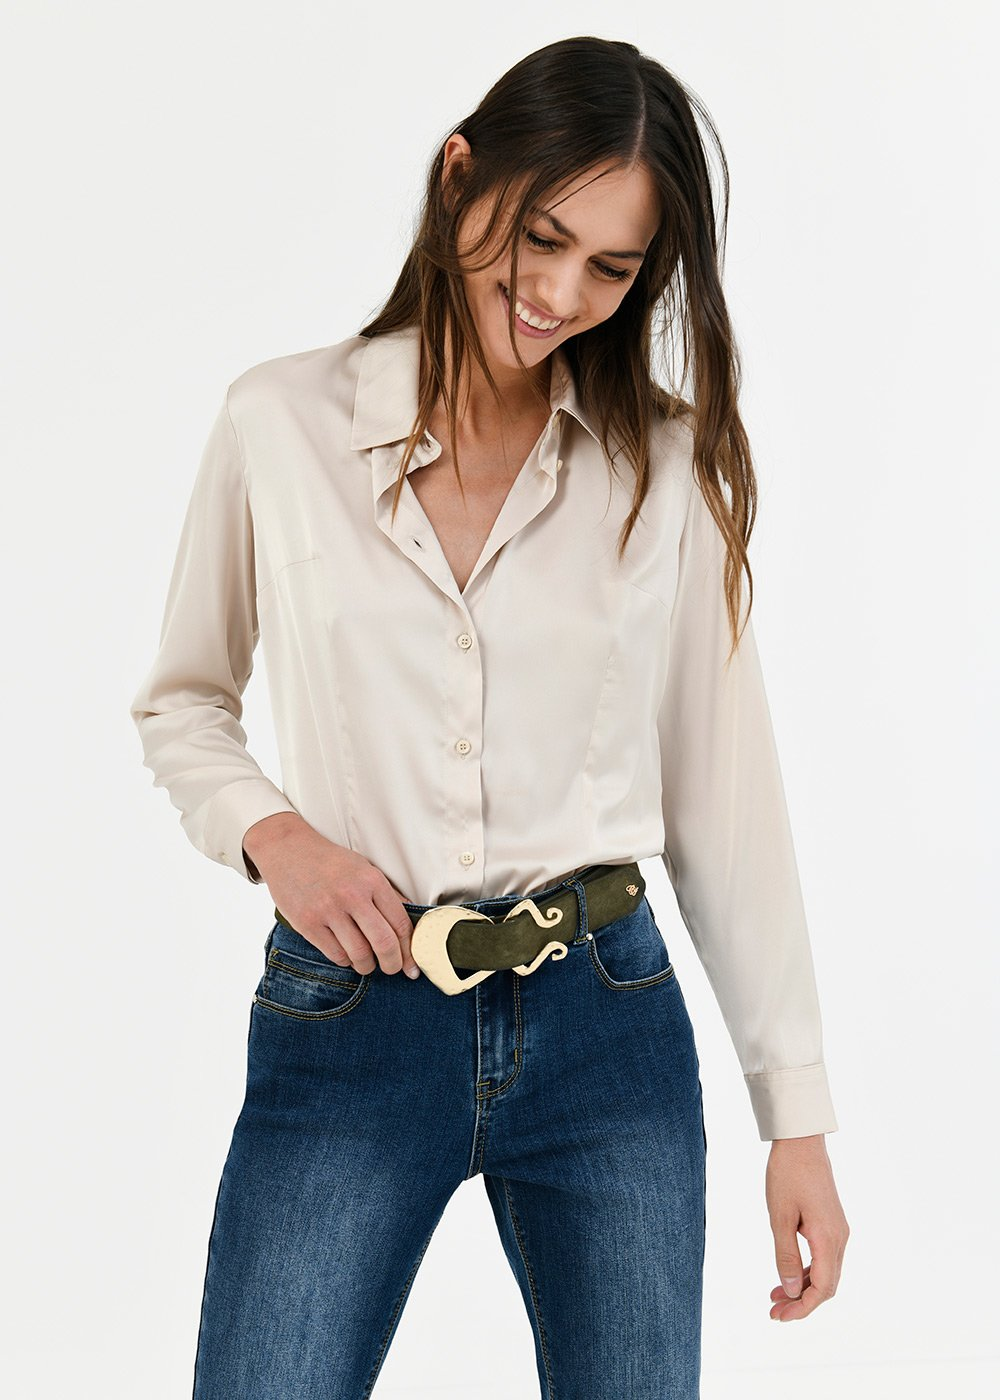 Alessia shirt with satin effect - Light Beige - Woman